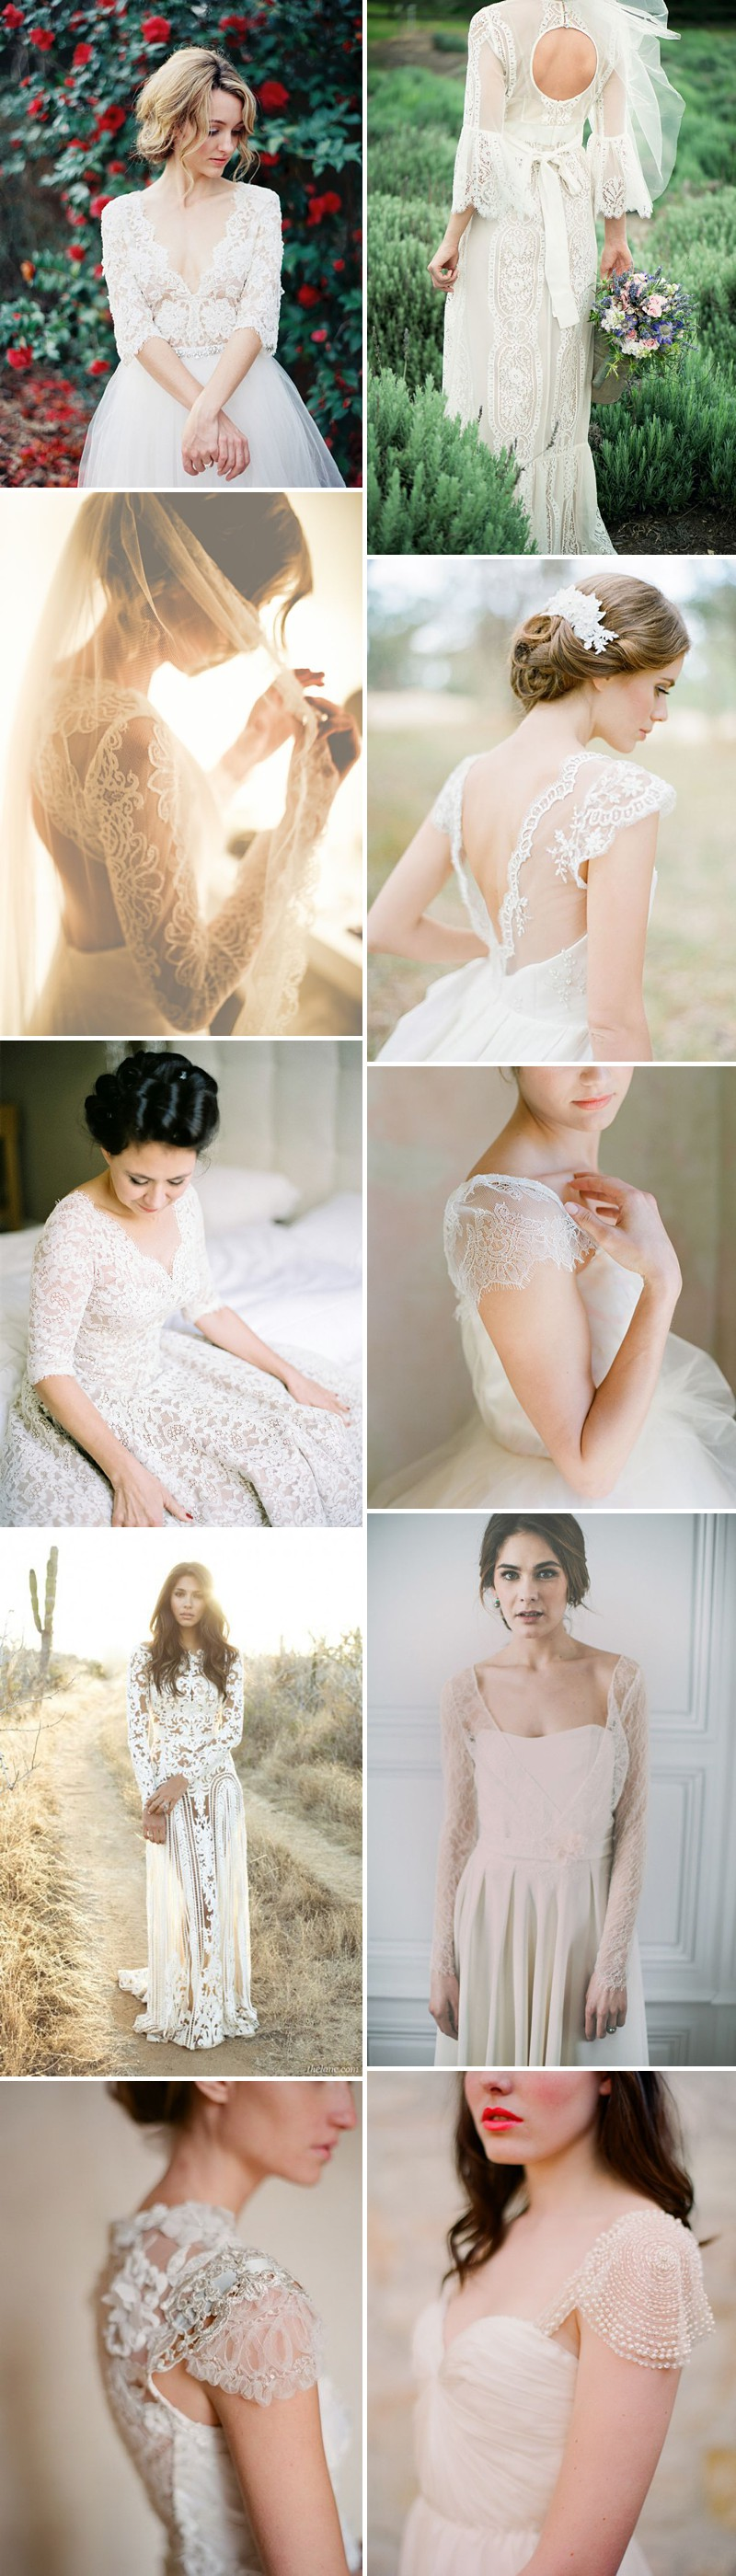 Rock My Wedding's Favourite 2014 Bridal Trends Including Statement Back Bridal Gowns, Juliet Bridal Veil And Two Piece Wedding Dresses._0002